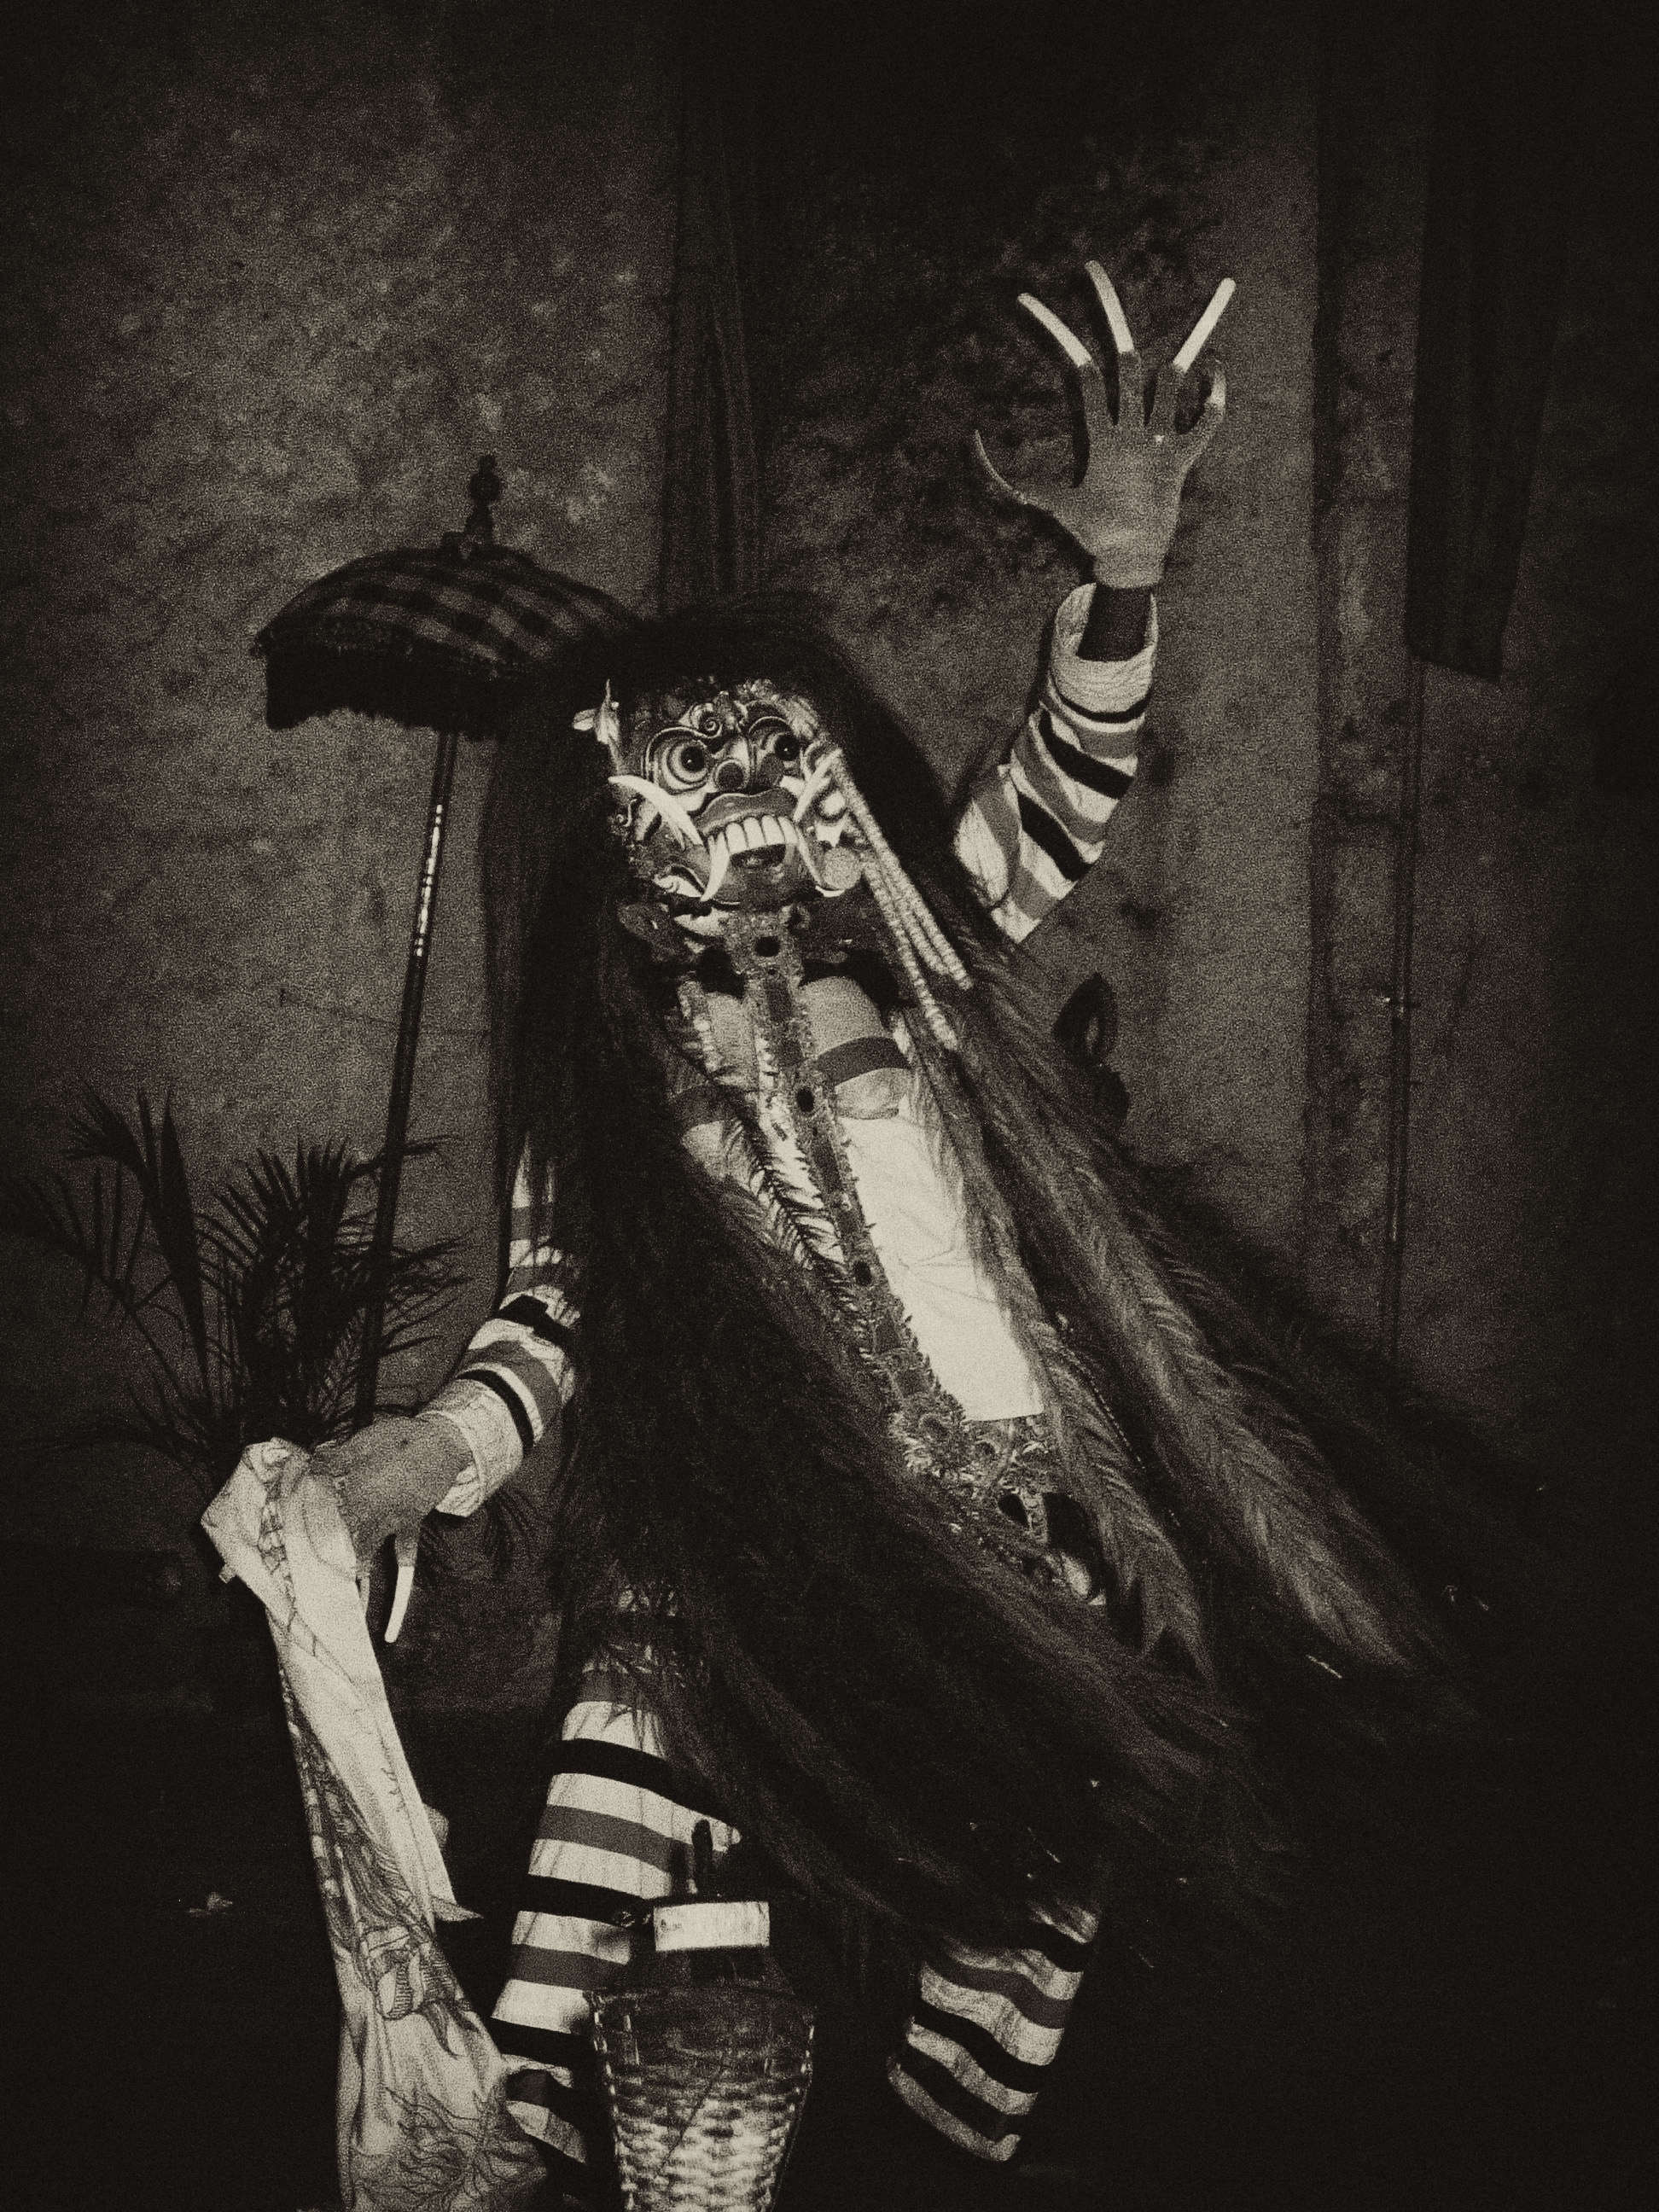 As Queen of Bali, Randga was exiled for practicing witchcraft. She later became the goddess of evil and ruler of demons